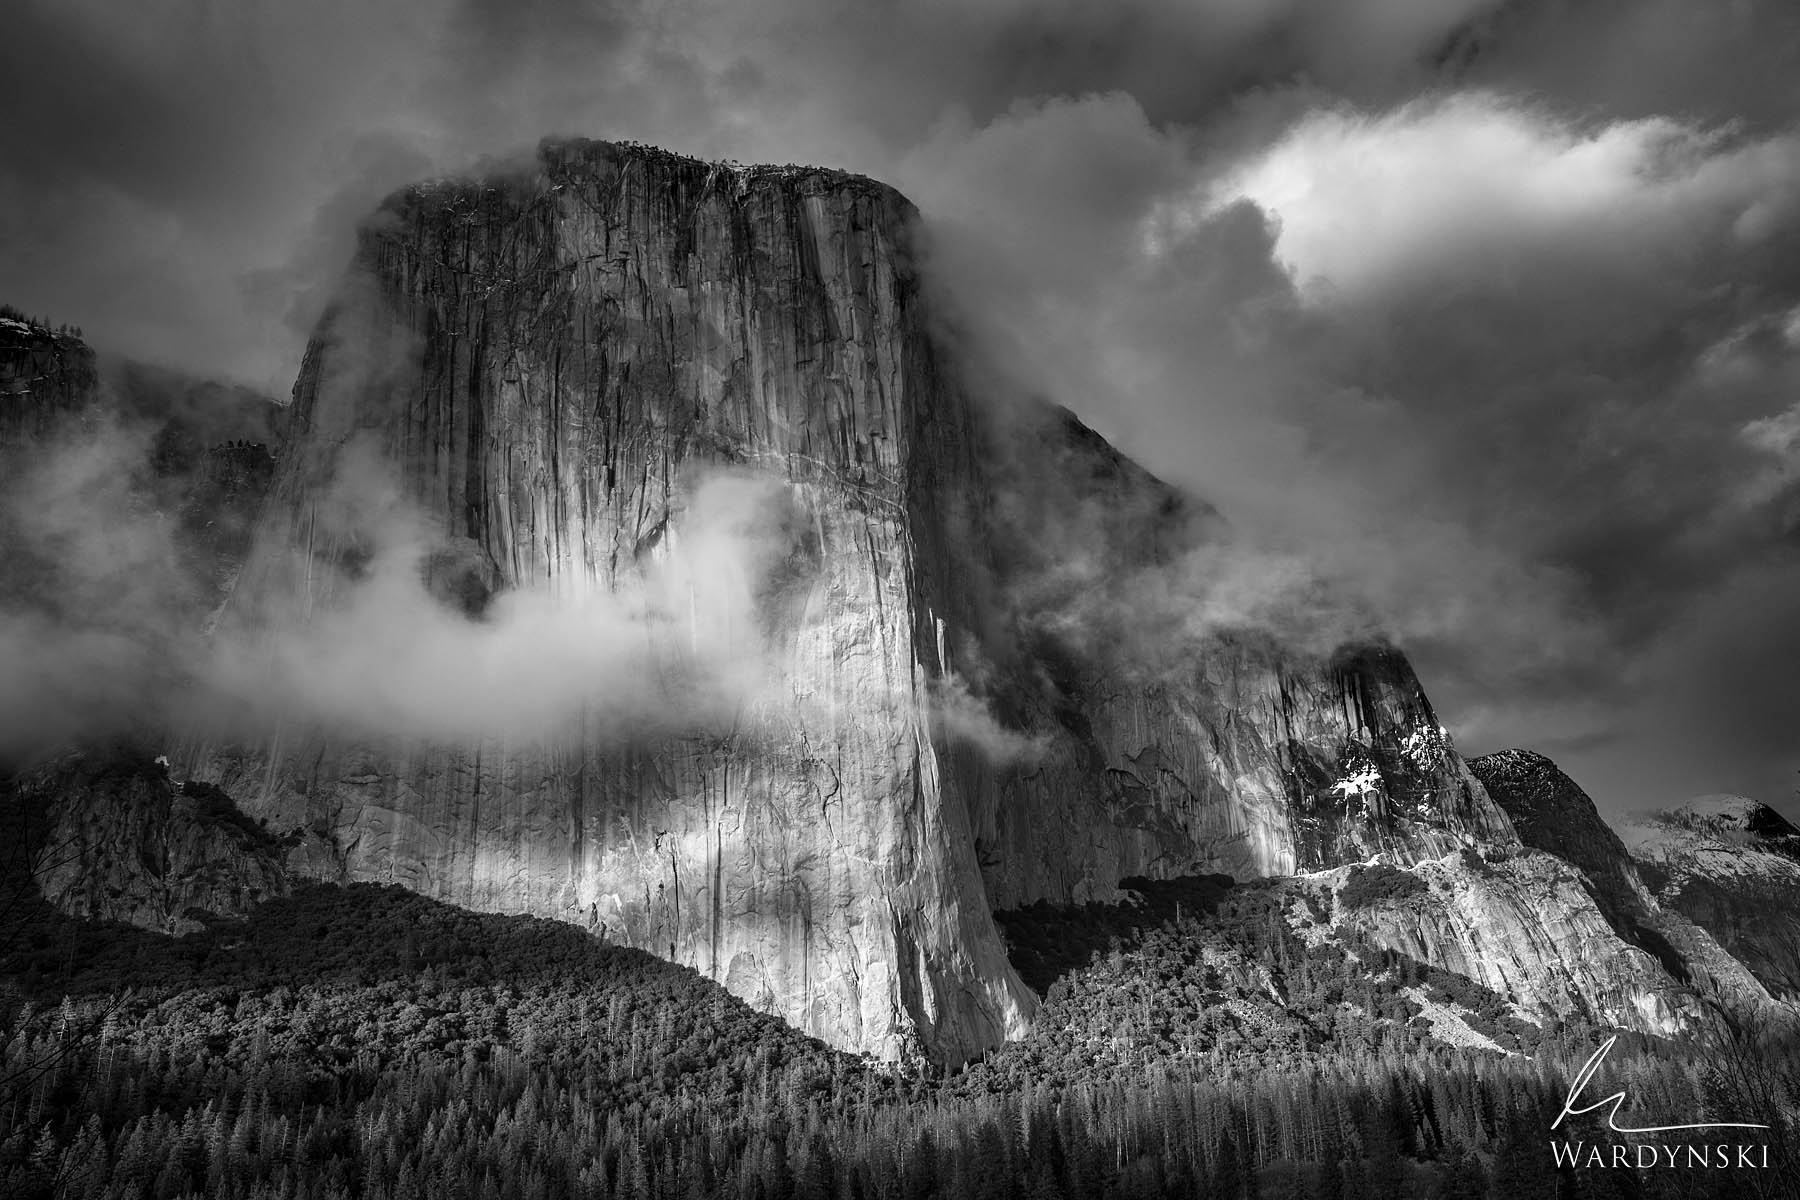 Fine Art Print in Black and White | Limited Edition of 100 There are few rocks in this world that are as impressive as EL Capitan...